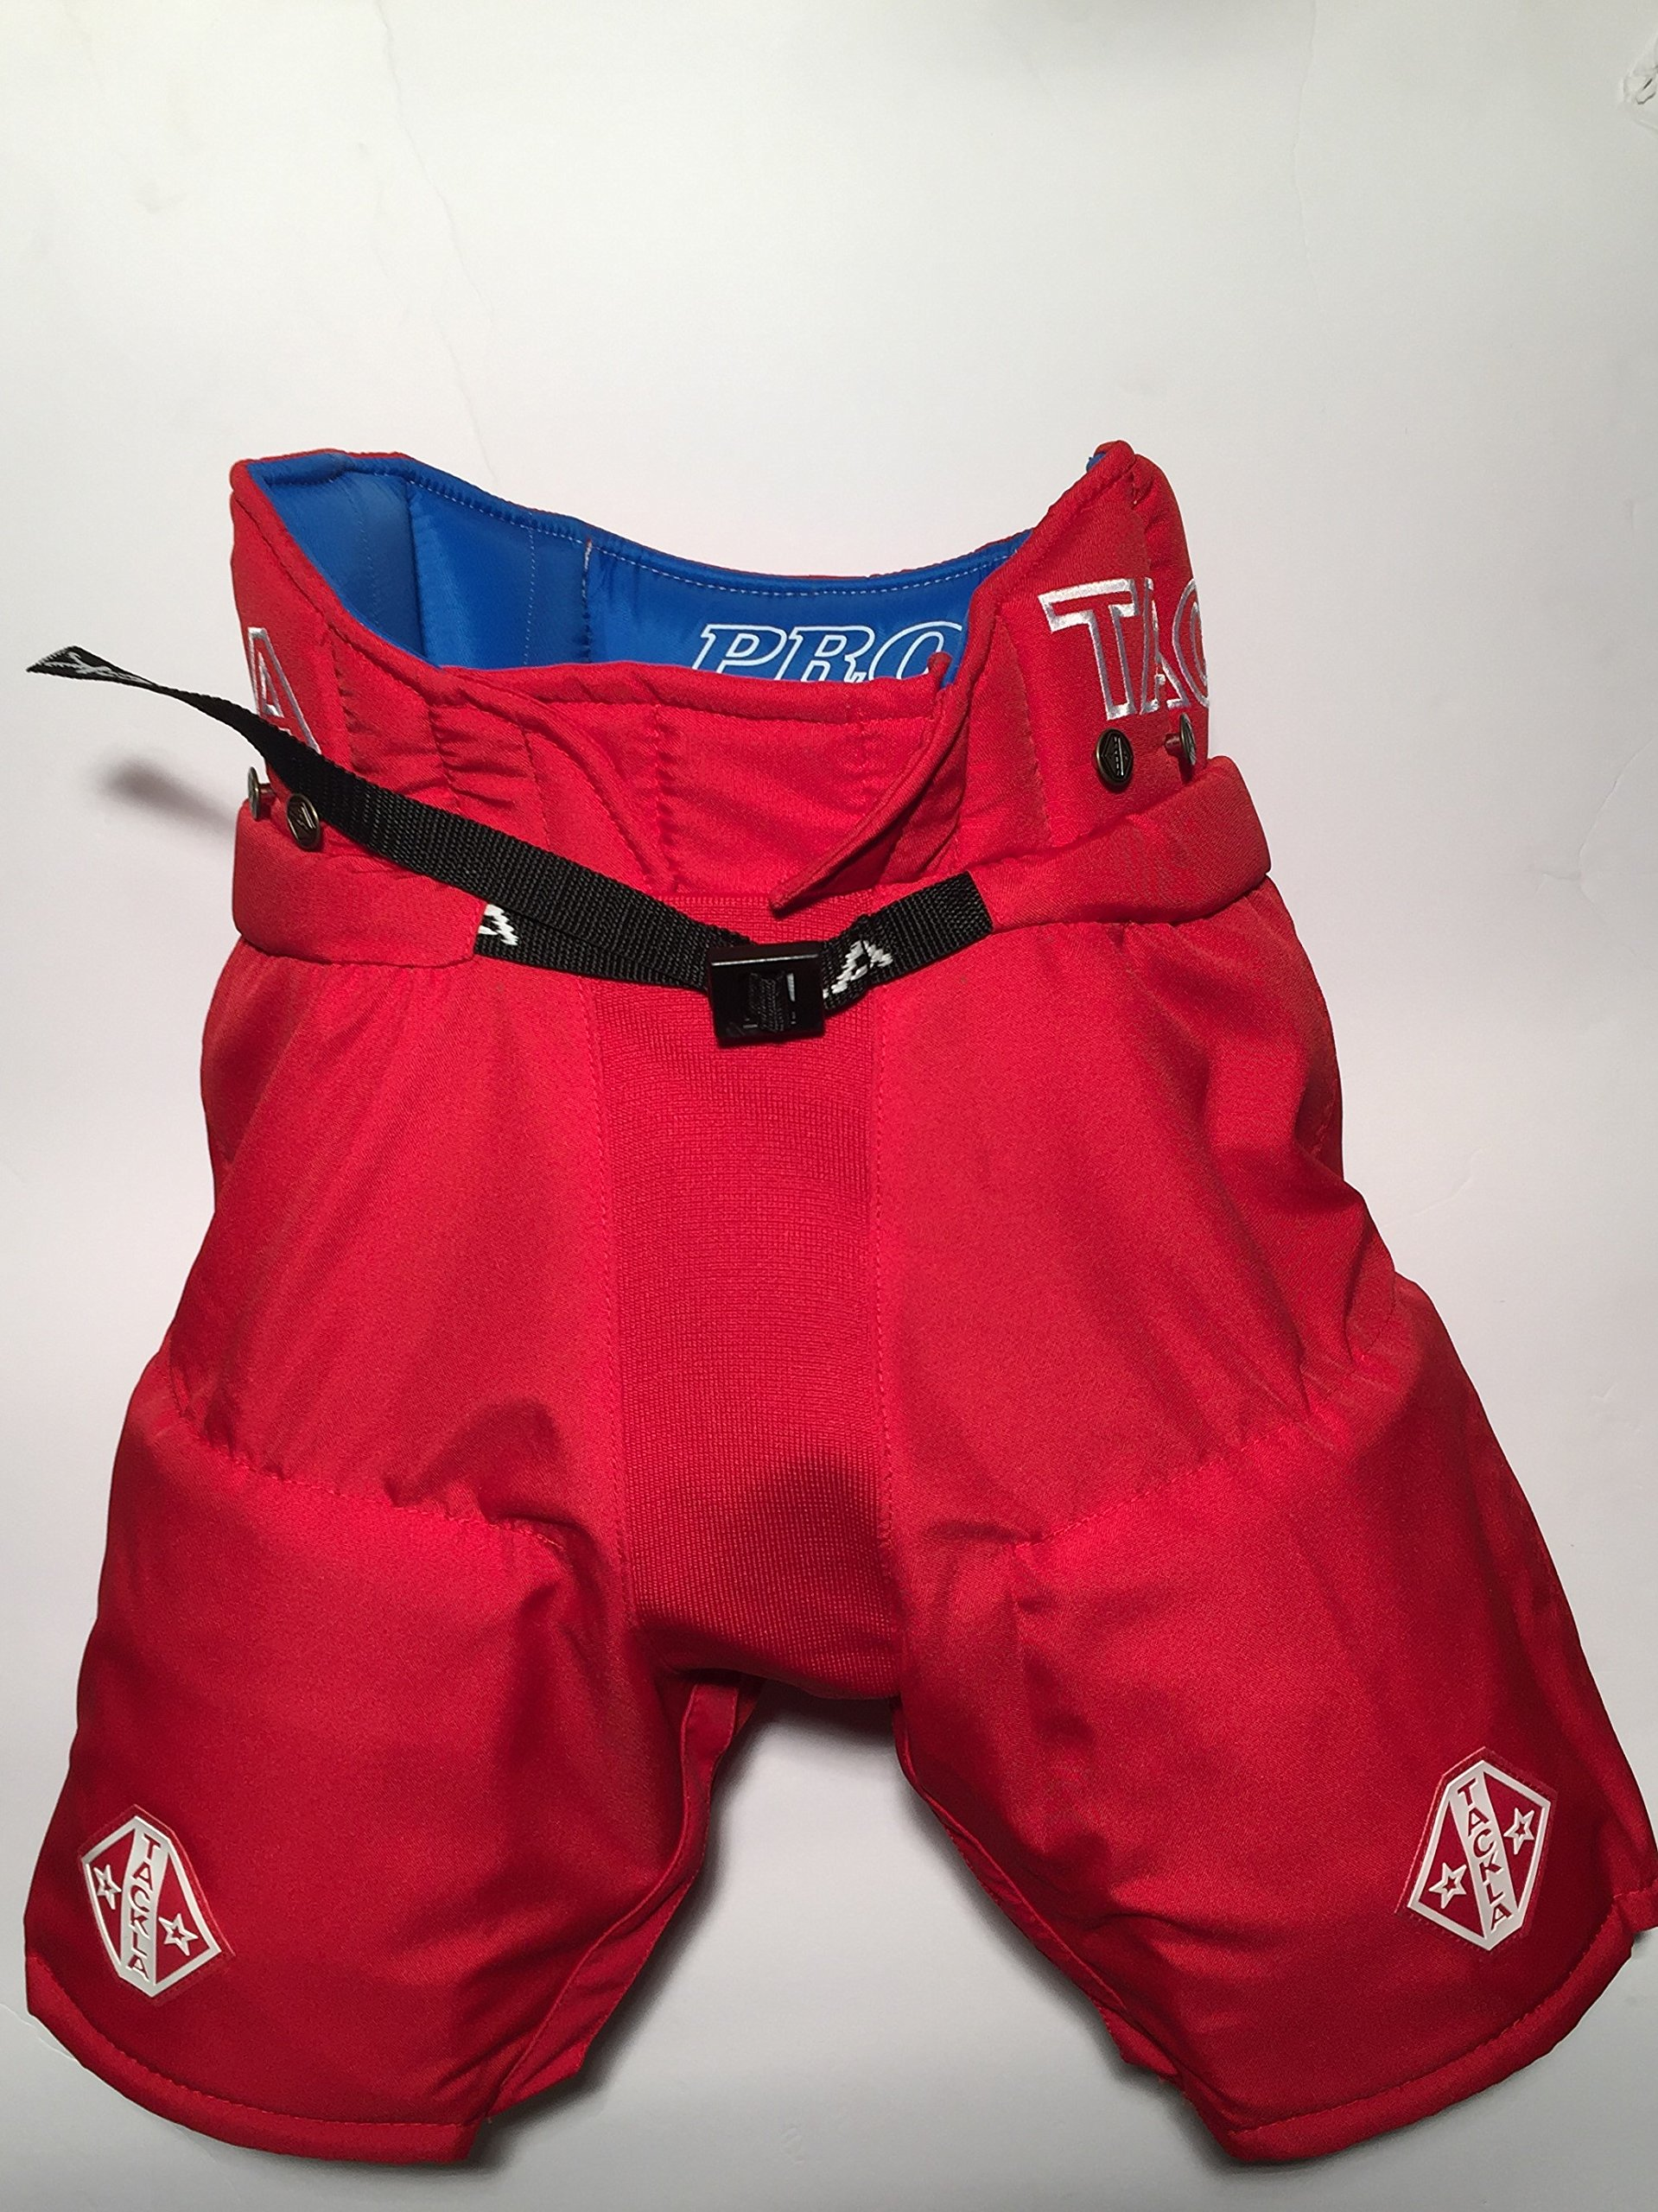 Tackla Hockey Pant Red Model 8800 Senior Medium, 50